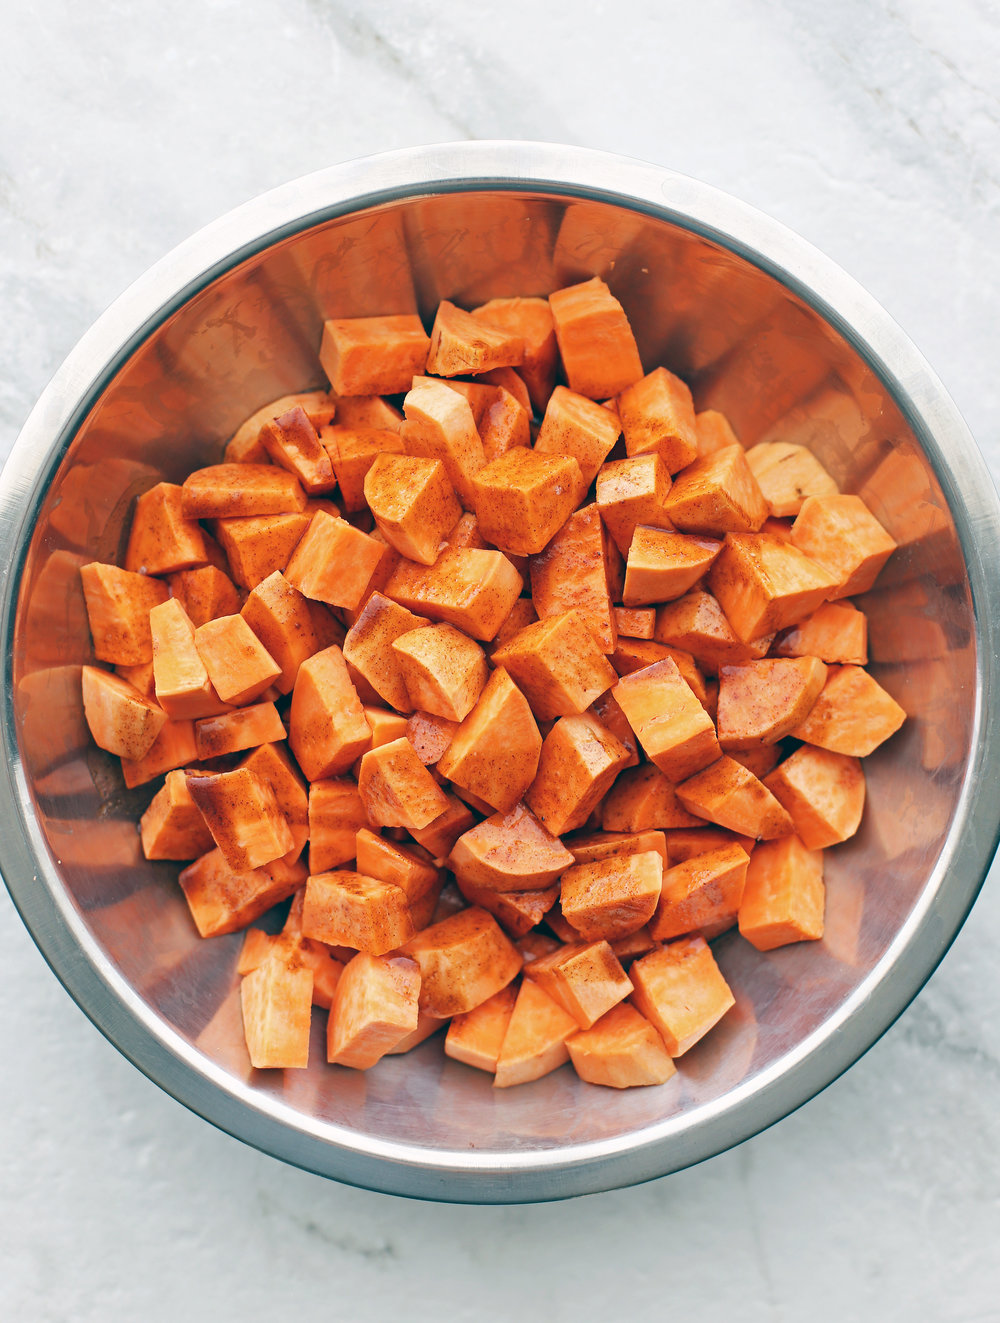 A bowl containing chunks of sweet potatoes, coconut oil, spices, and vanilla extract.